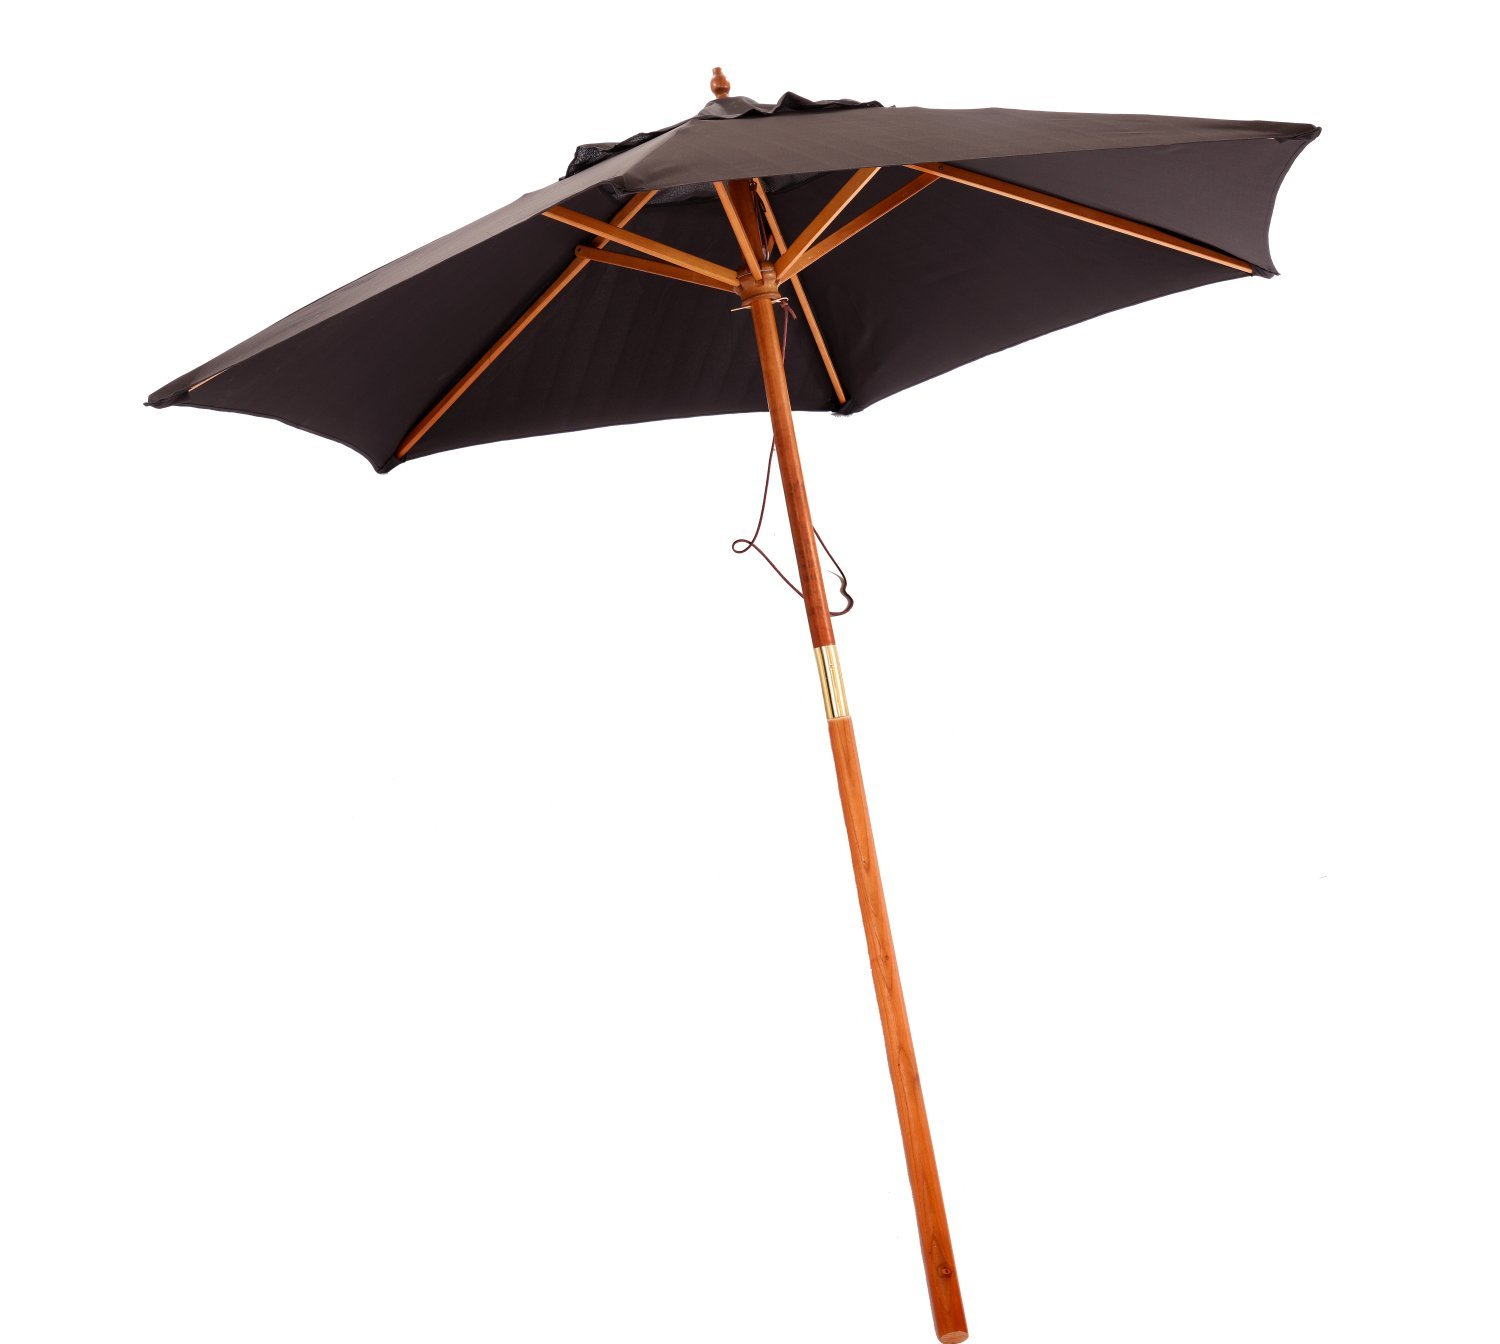 2 1m Wooden Black Garden Parasol Outdoor Patio Umbrella Canopy 29 99 Oypla Stocking The Very Best In Toys Electrical Furniture Homeware Garden Gifts And Much More